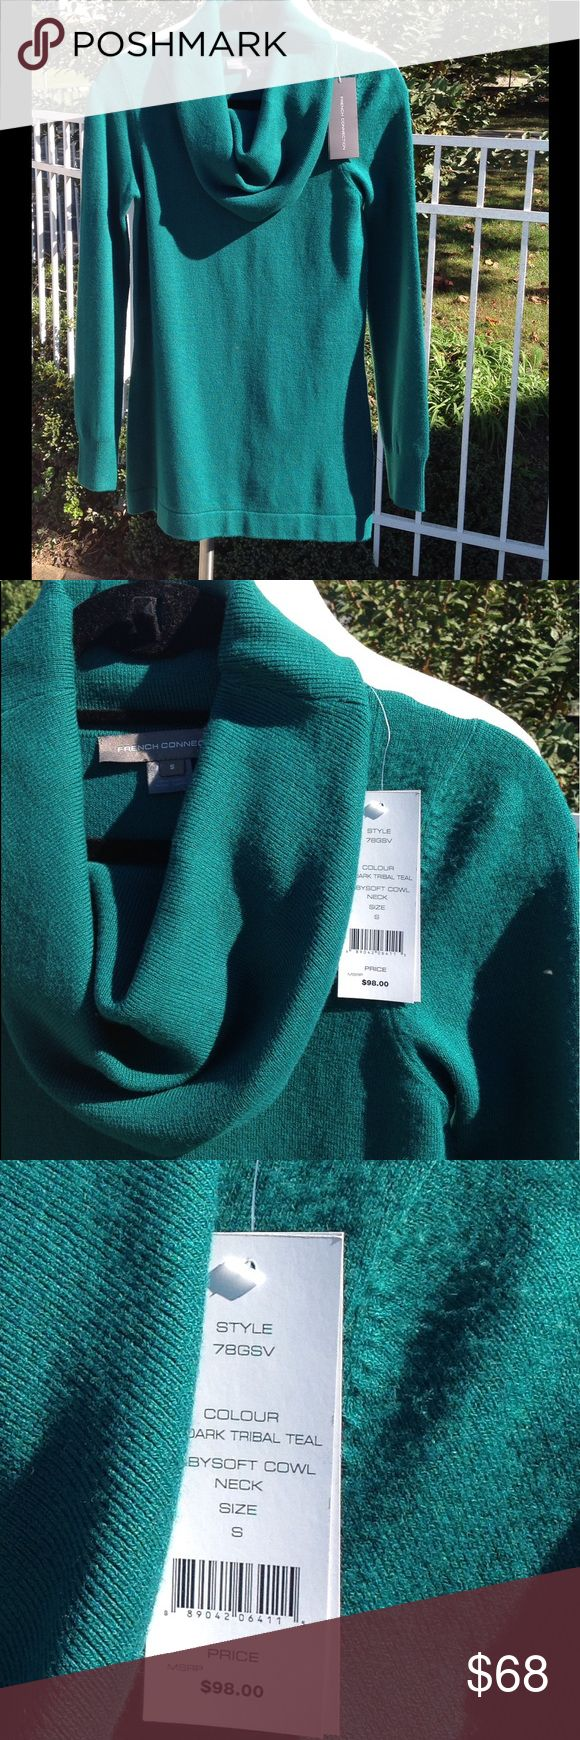 NWT FRENCH CONNECTION SWEATER This sweater is the softest. It would look great with jeans or leggings. It is a beautiful teal color. It's beautiful on. LOVE IT 😍 French Connection Sweaters Cowl & Turtlenecks